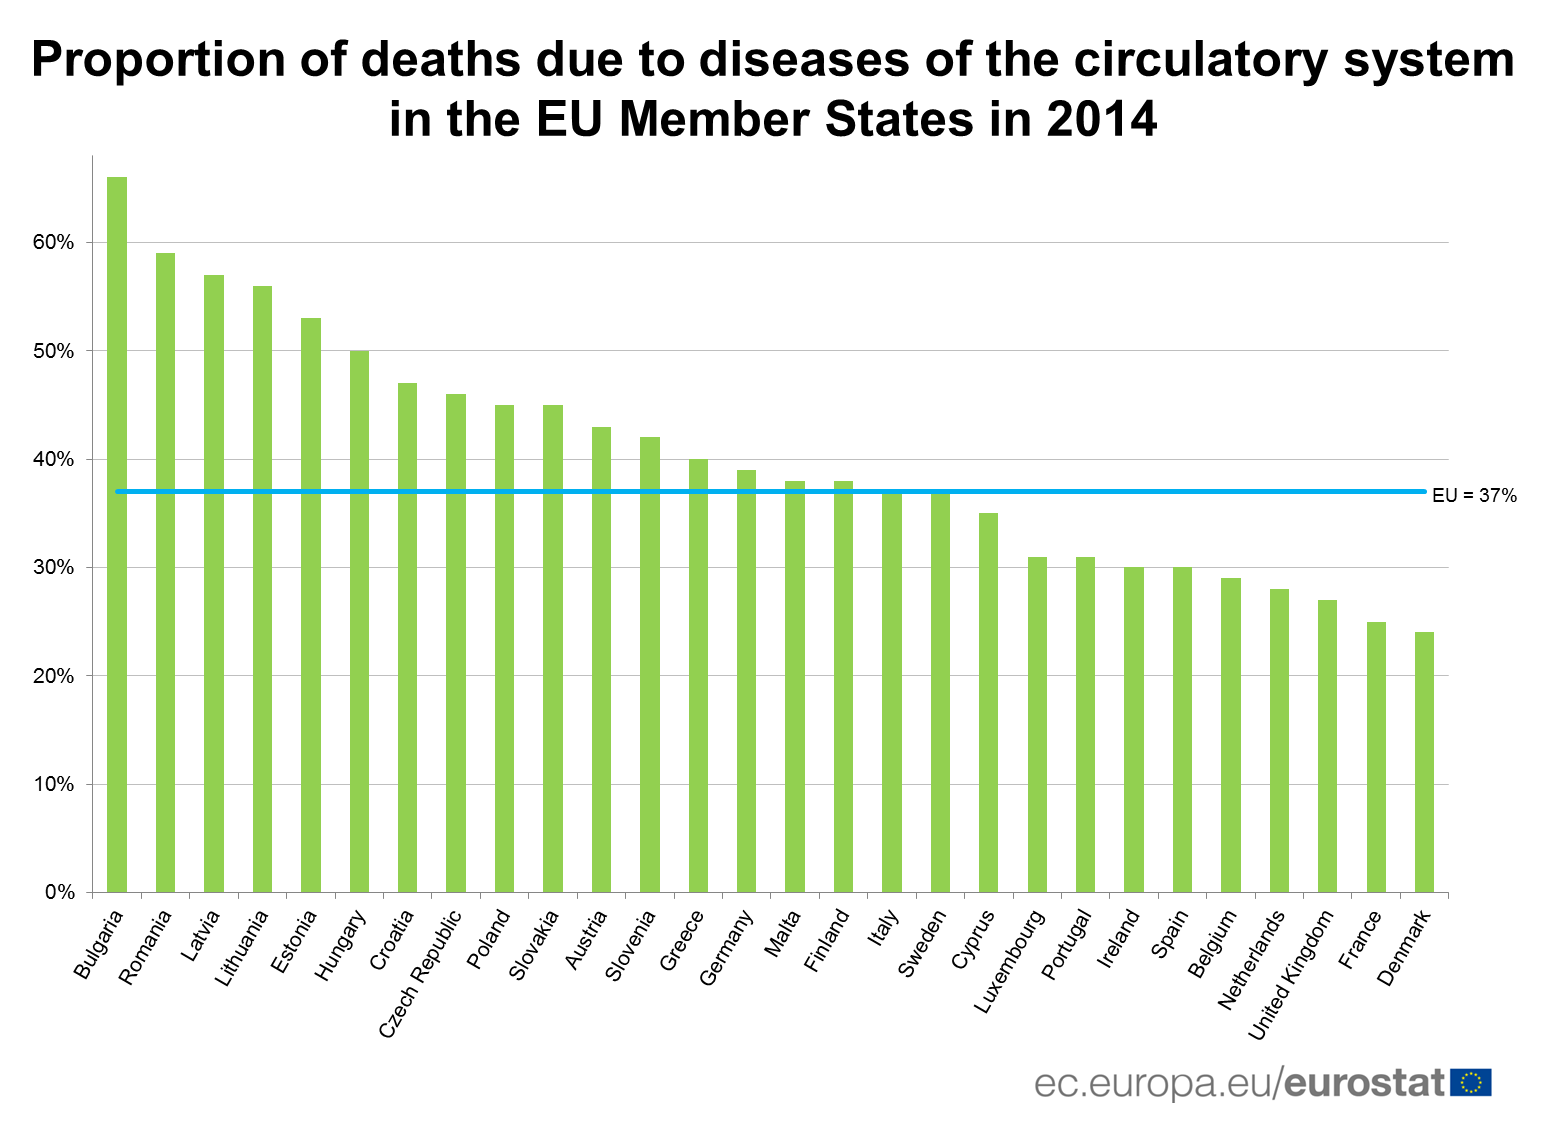 Porportion of deaths due to diseases of the circulatory system, 2014